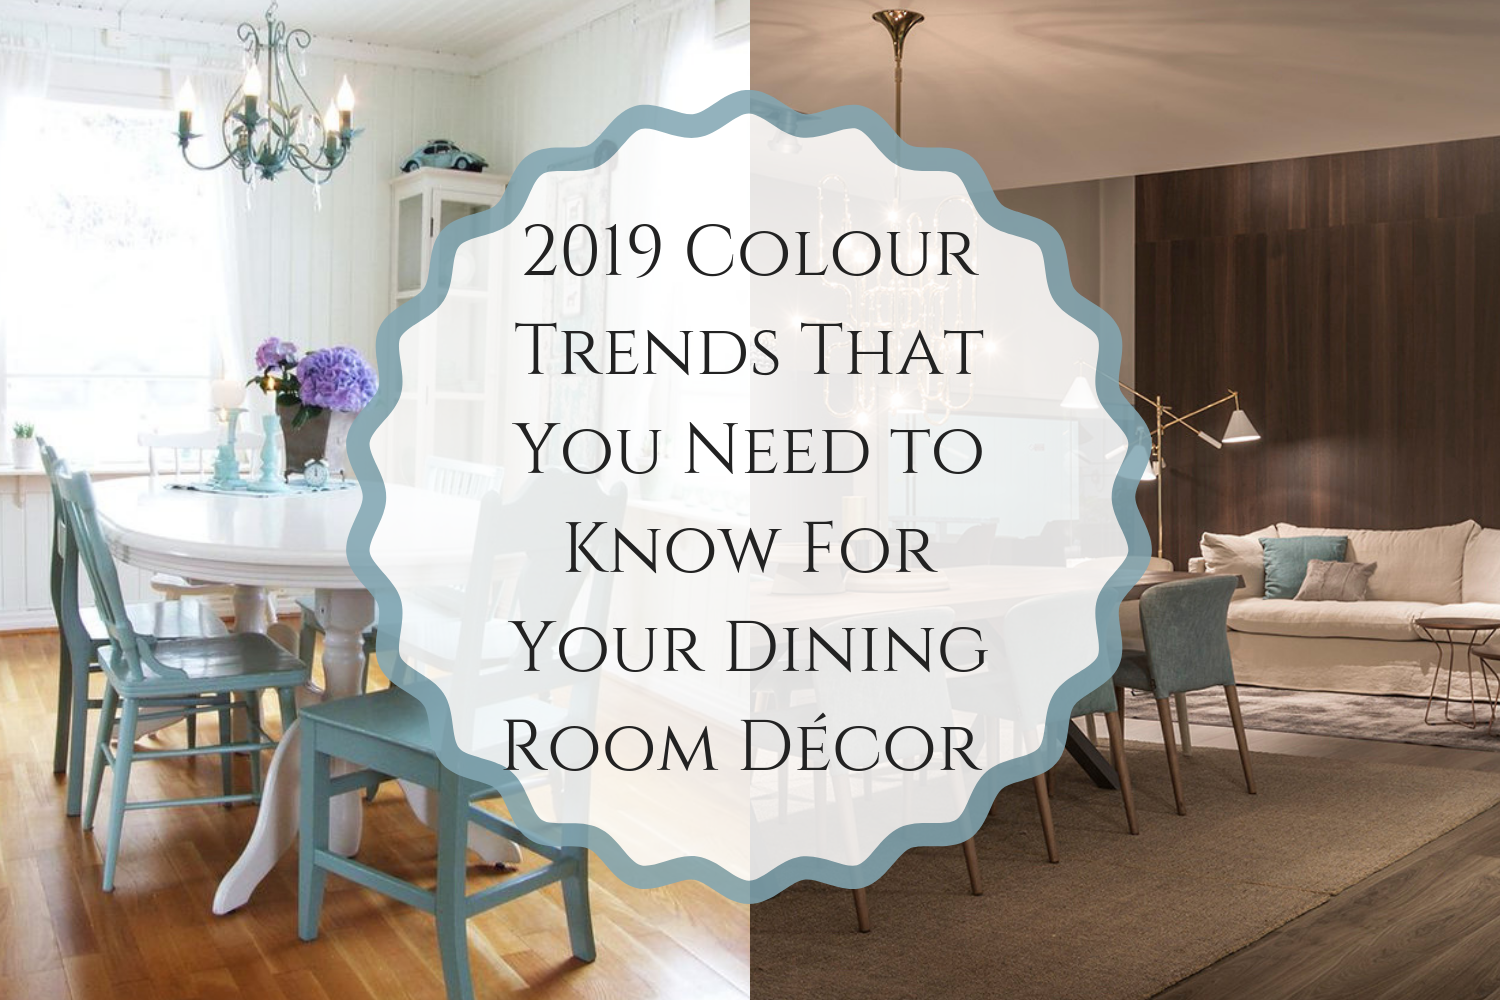 2019 Colour Trends That You Need To Know For Your Dining Room Decor